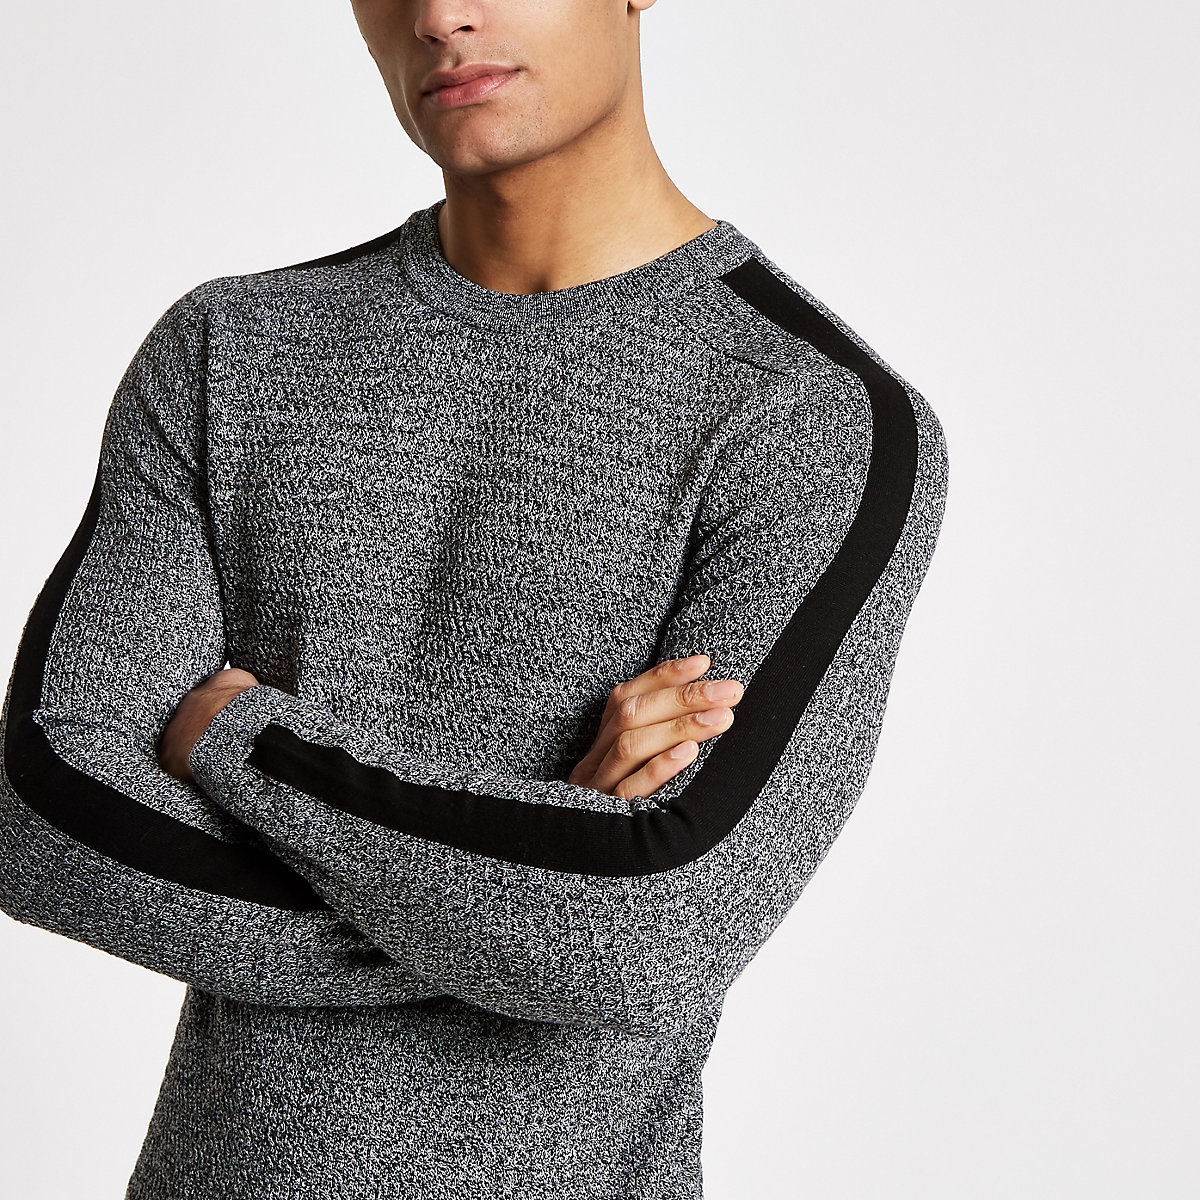 Grey muscle fit cable knit top